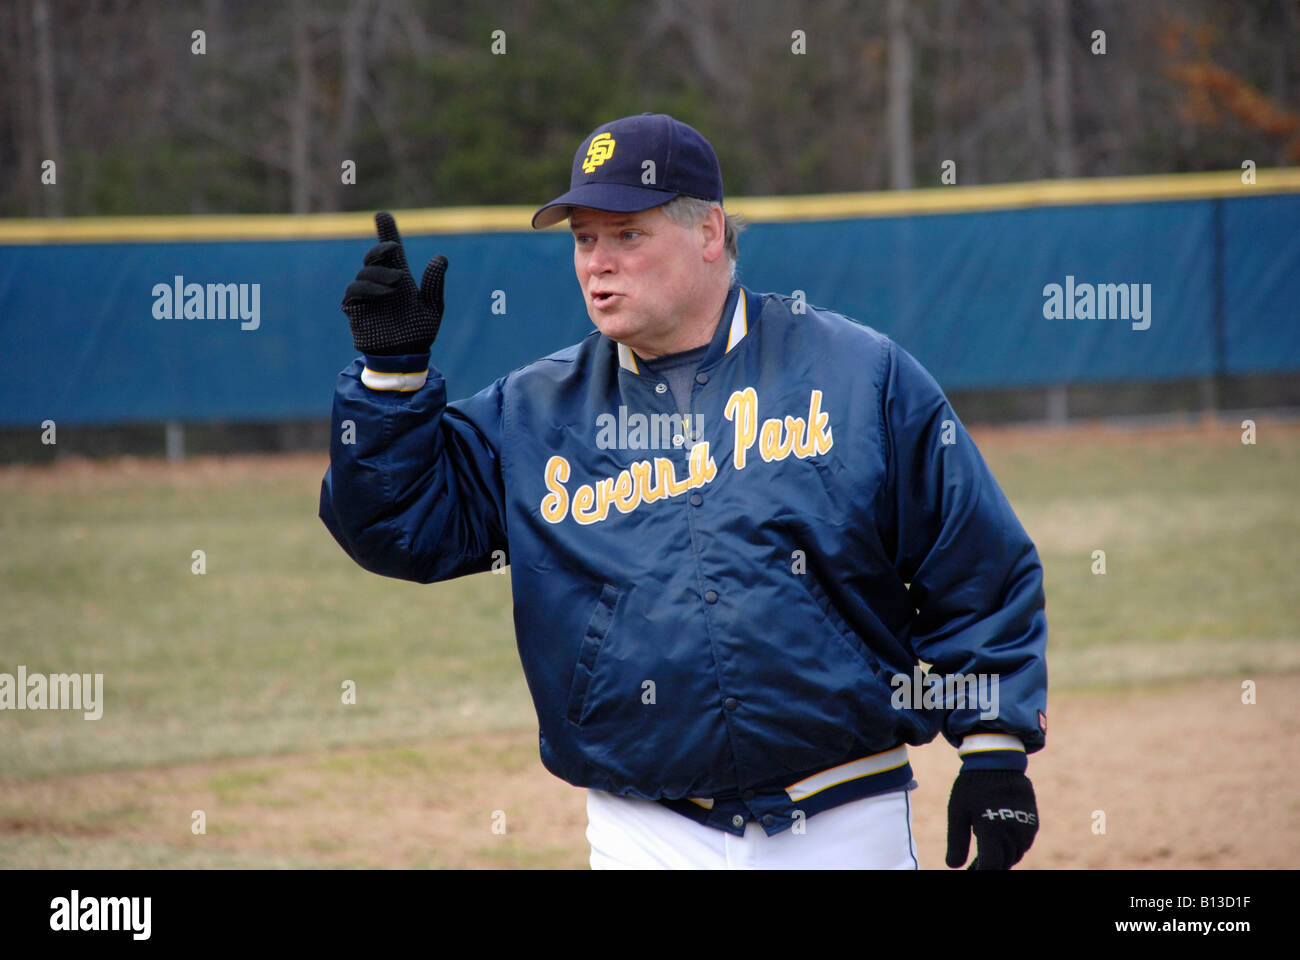 baseball coach given instruction to a batter in a high school baseball game in Severna Park, Maryland - Stock Image